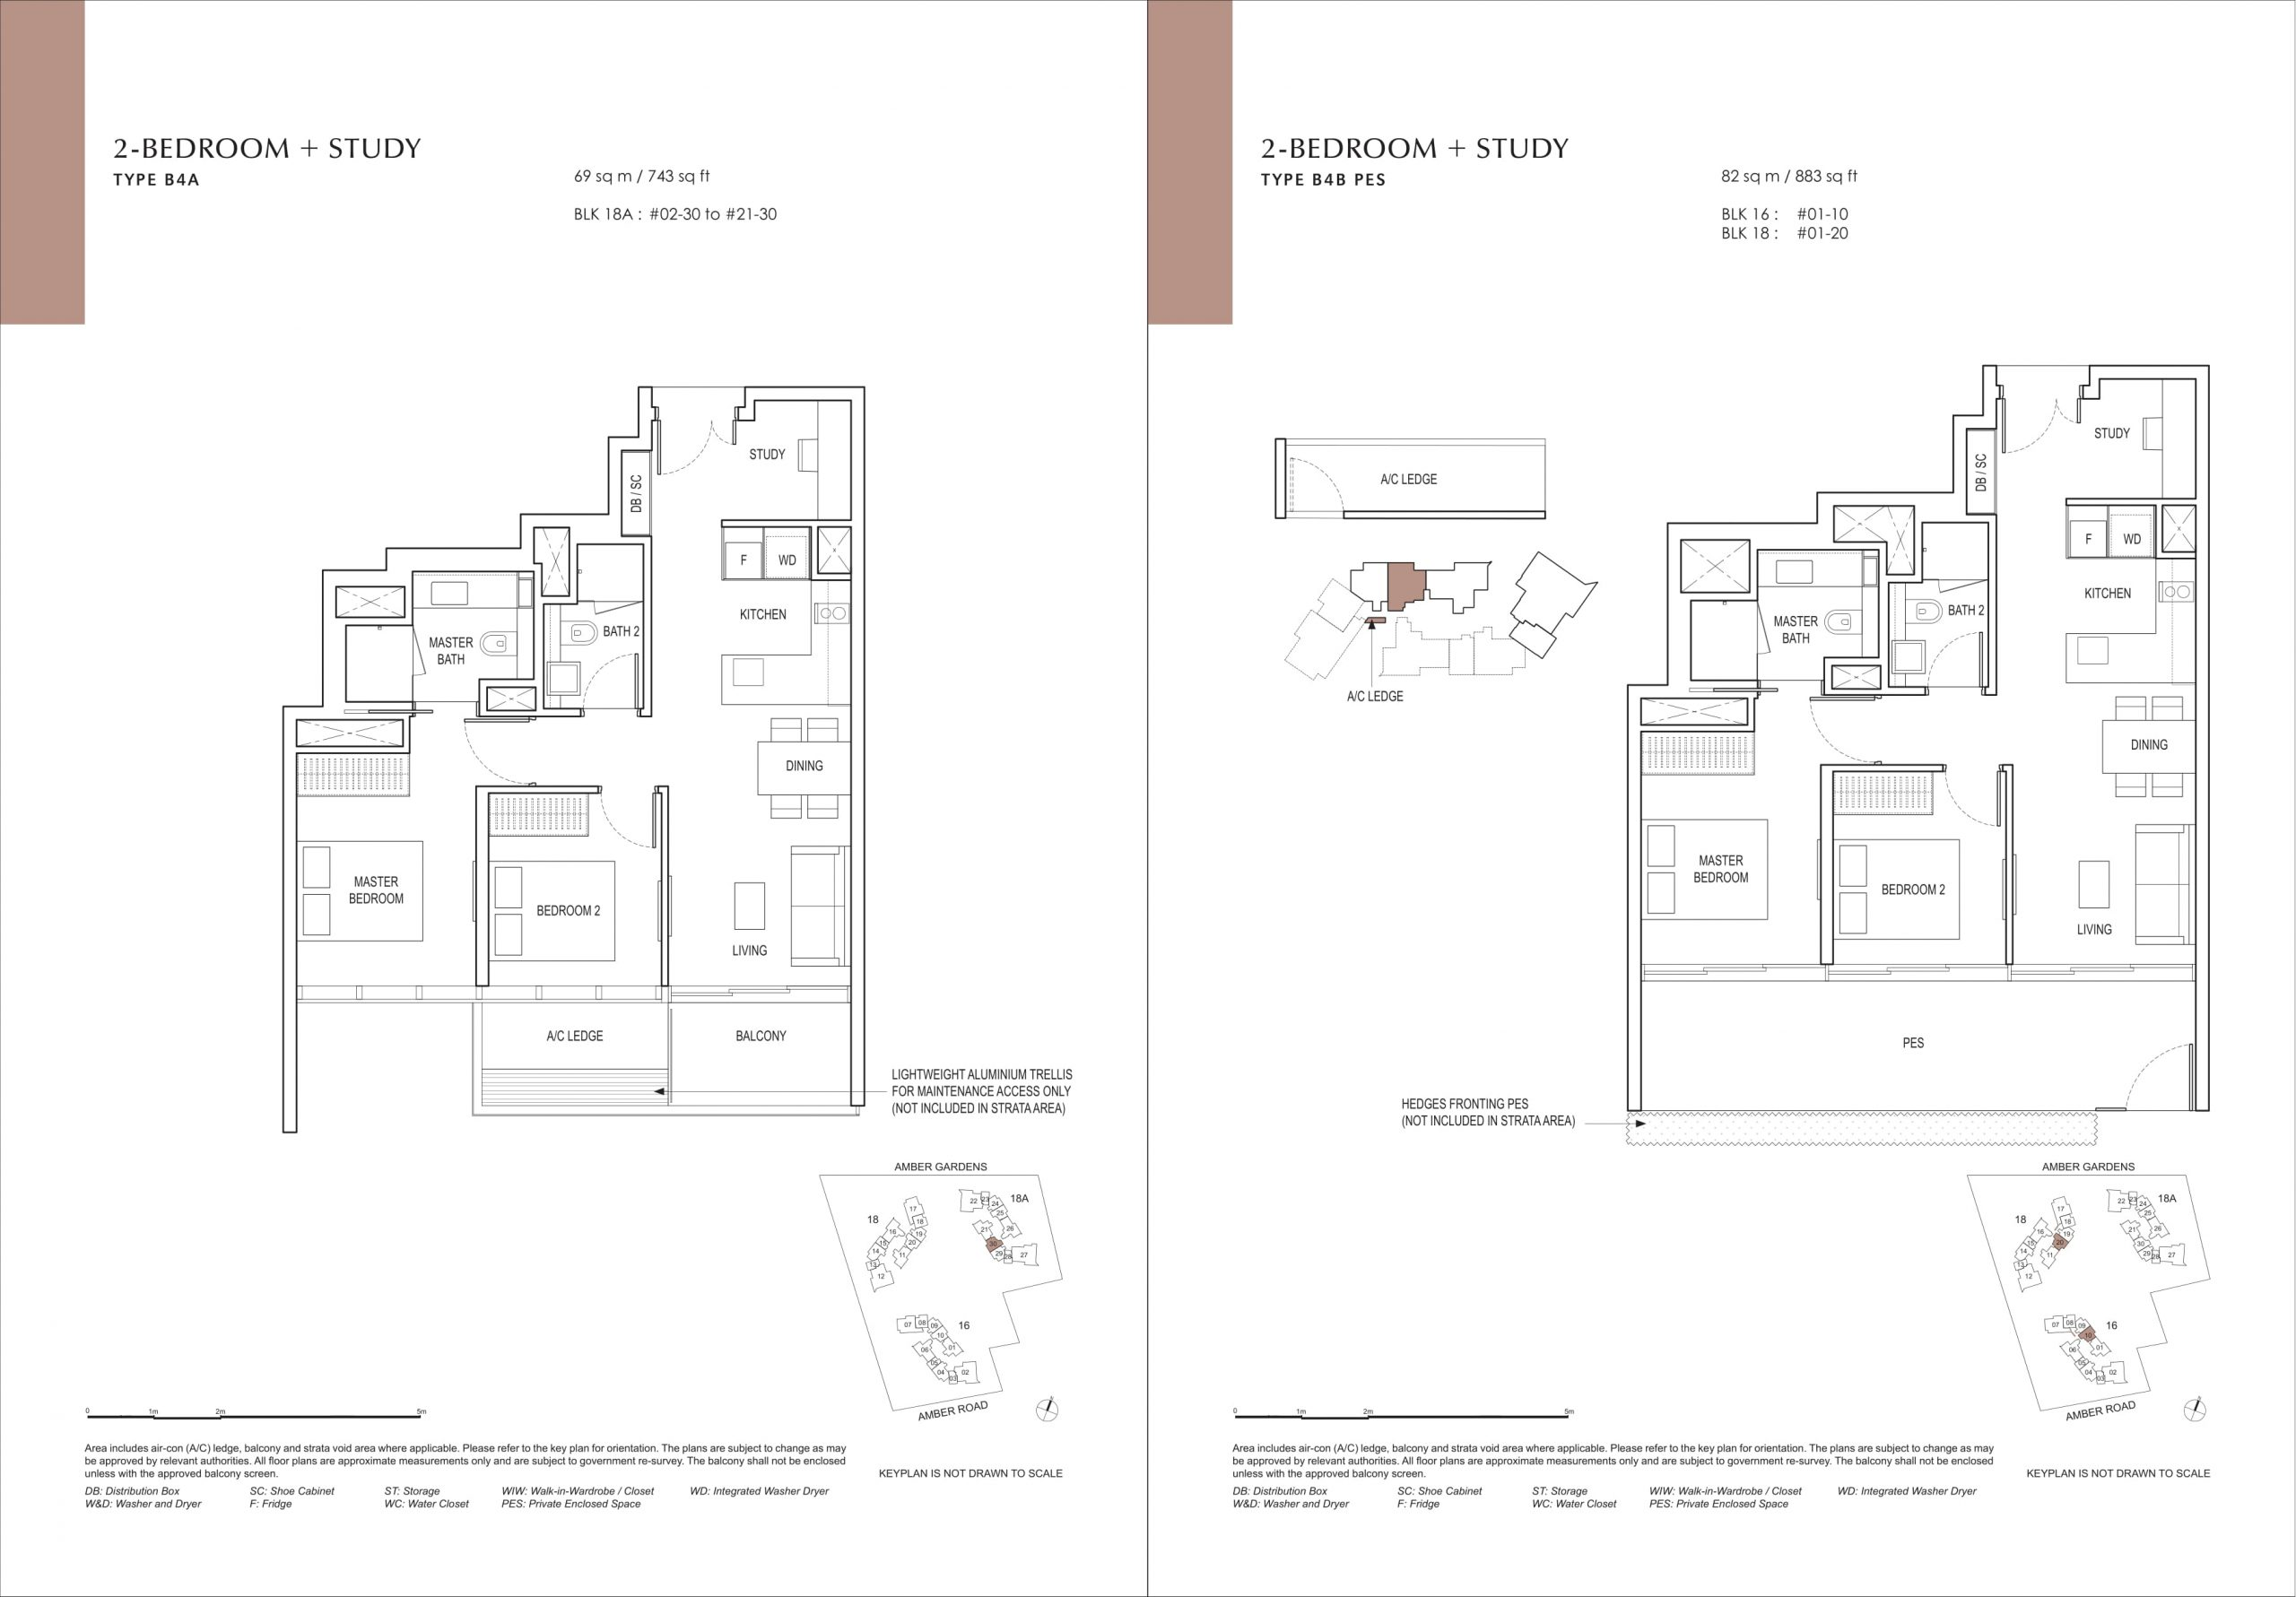 Amber Park's two-bedroom & two-bedroom + study types